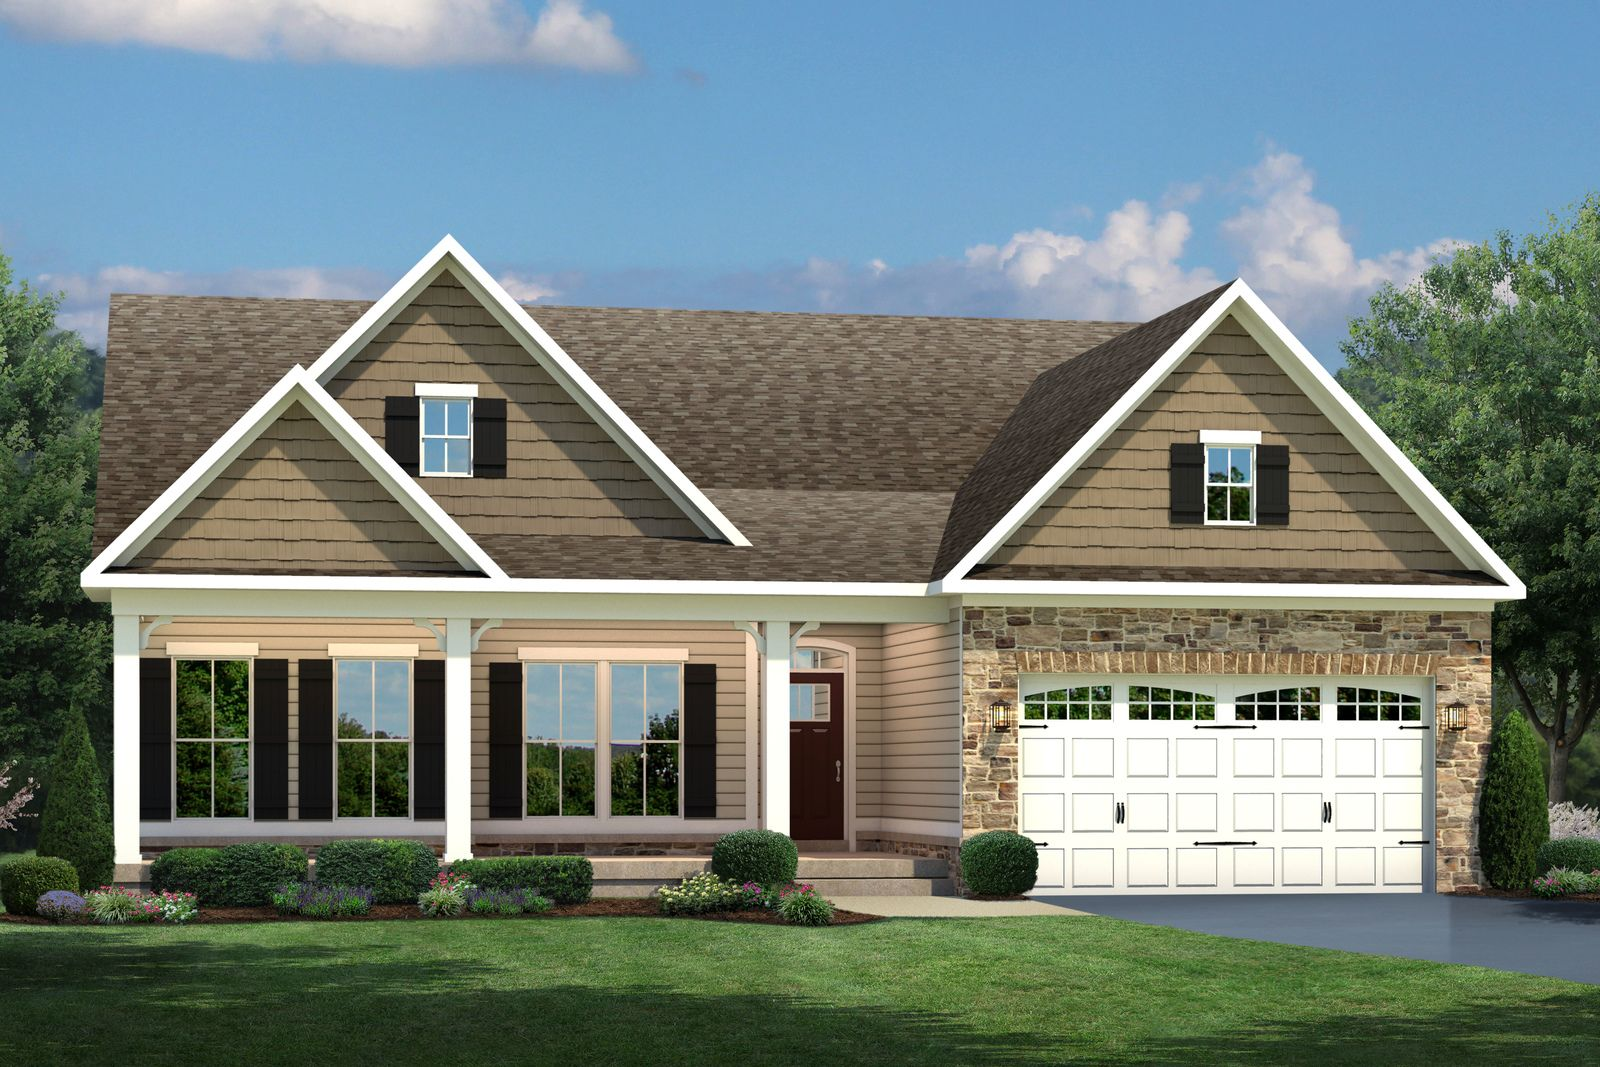 Single Family for Active at Brentwood Springs - Carolina Place 17263 Old Ingleside Drive Round Hill, Virginia 20141 United States